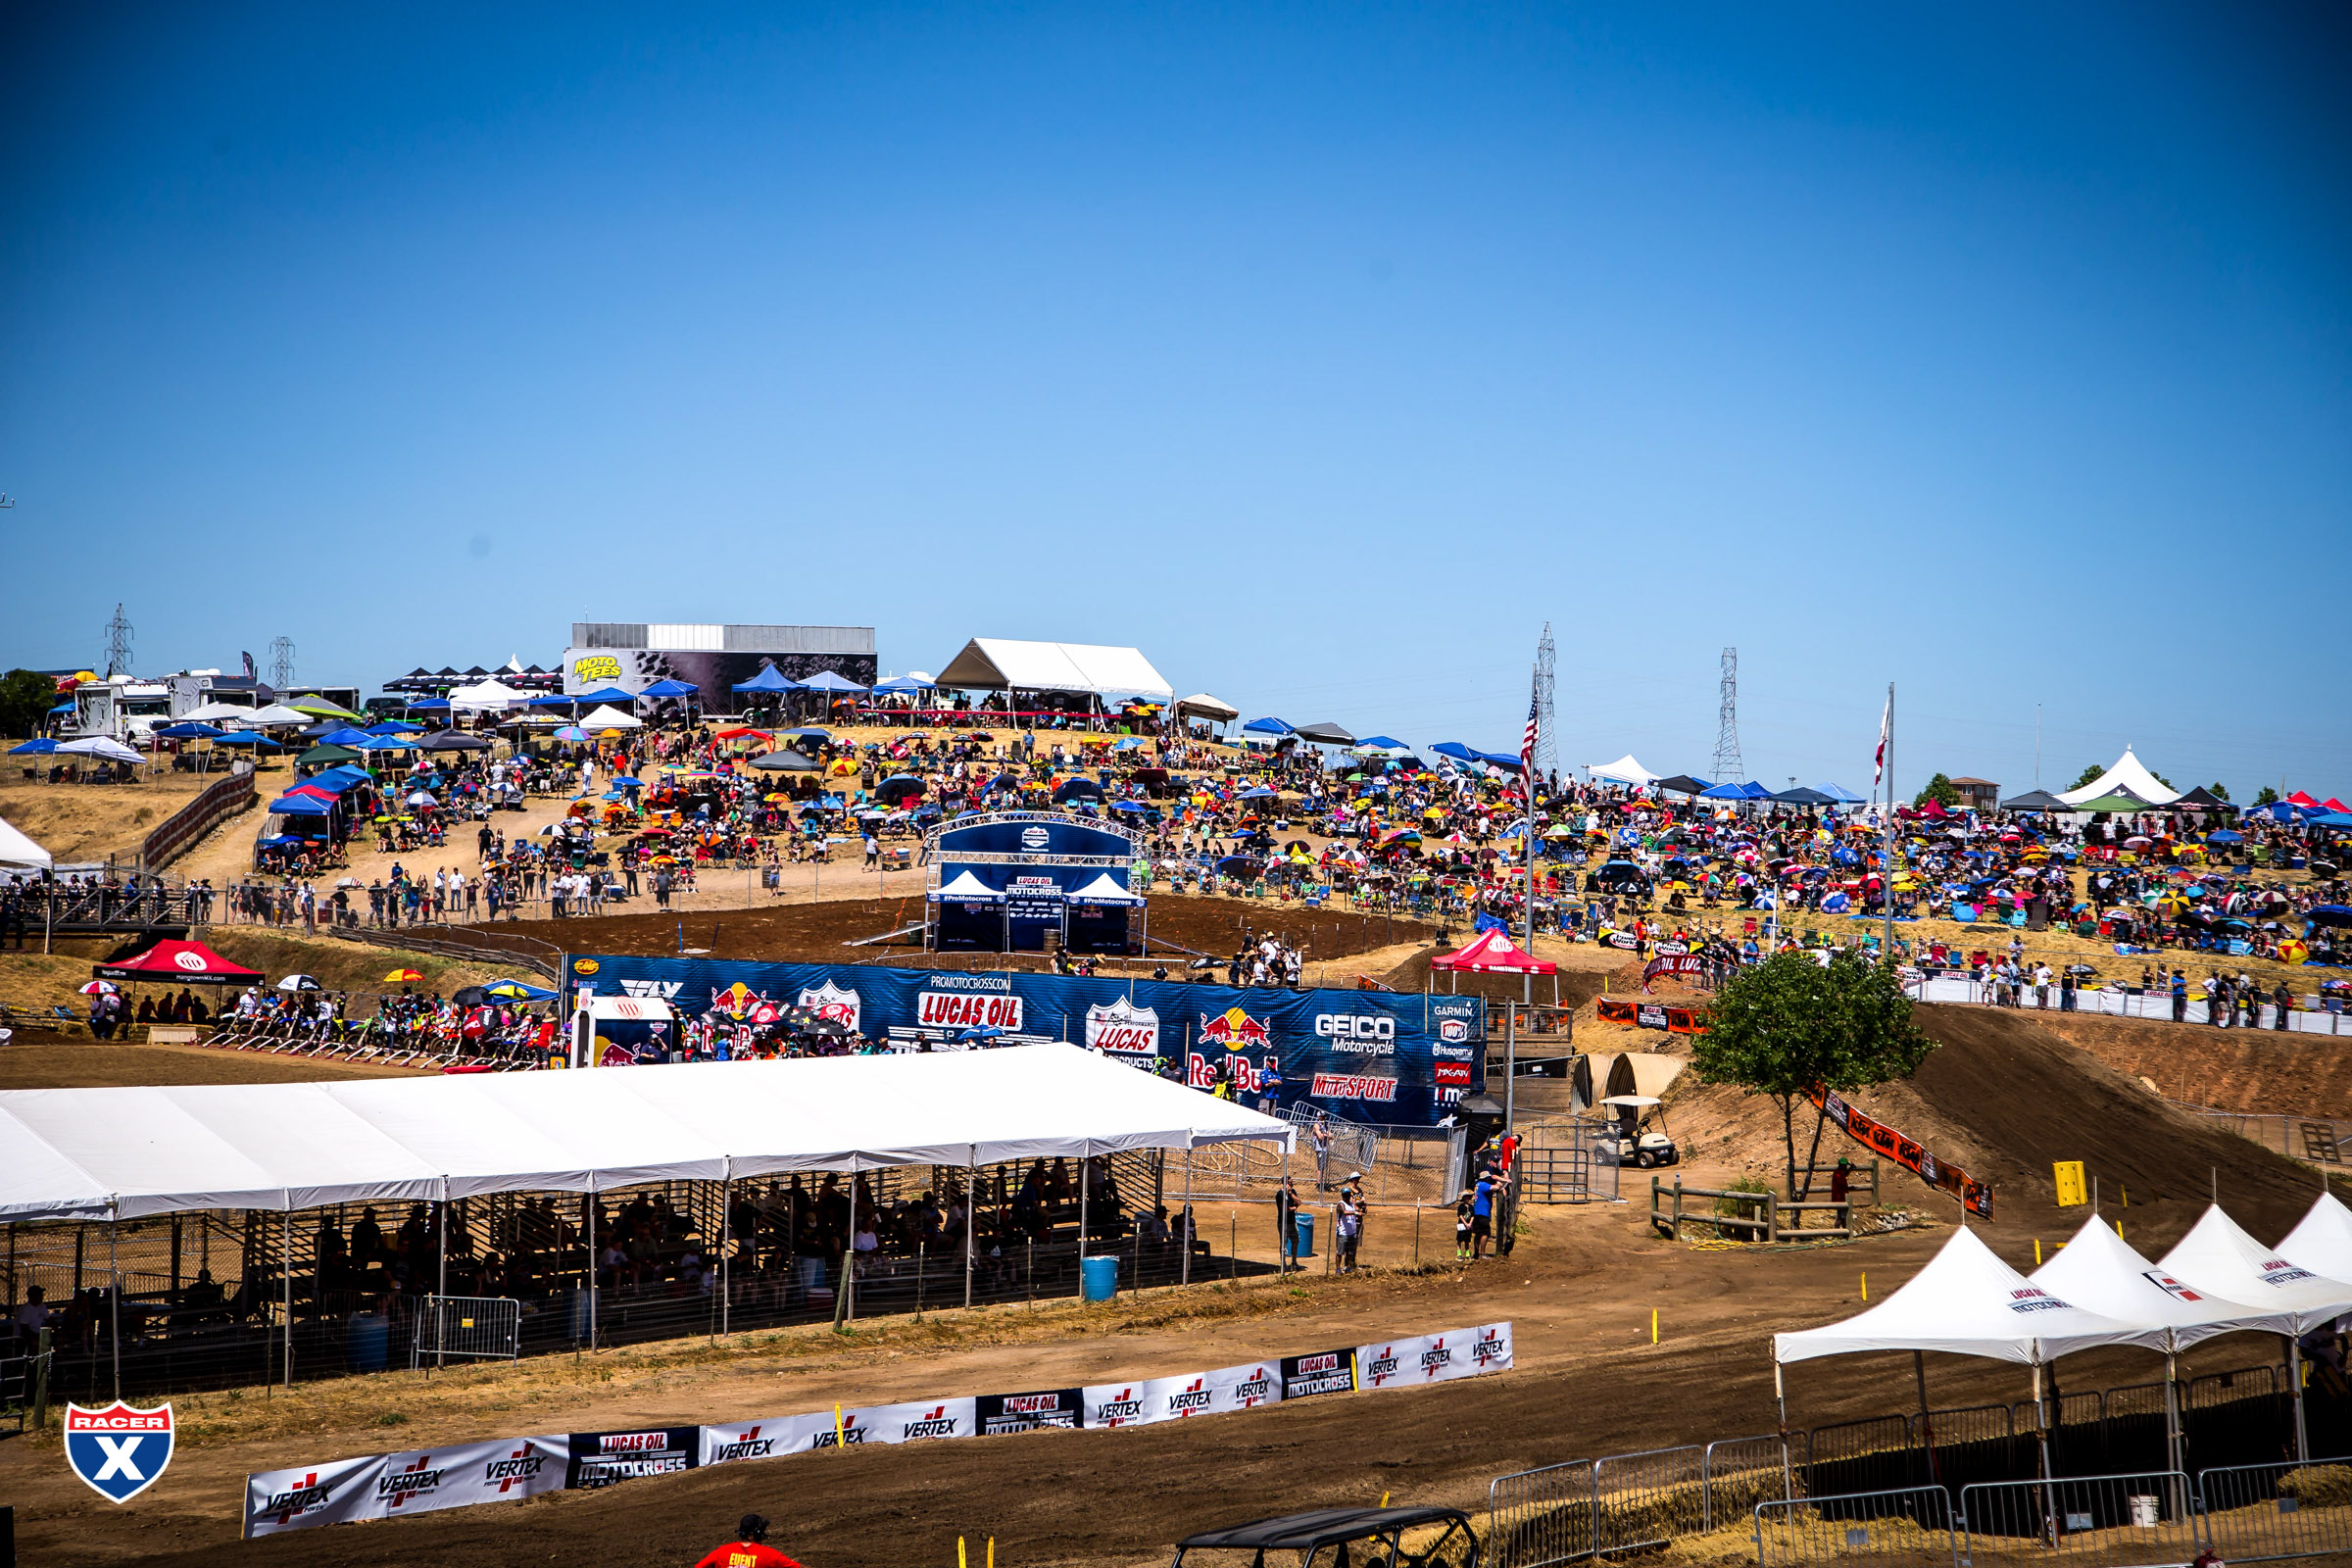 Pits_MX17_Htown_RS_0600